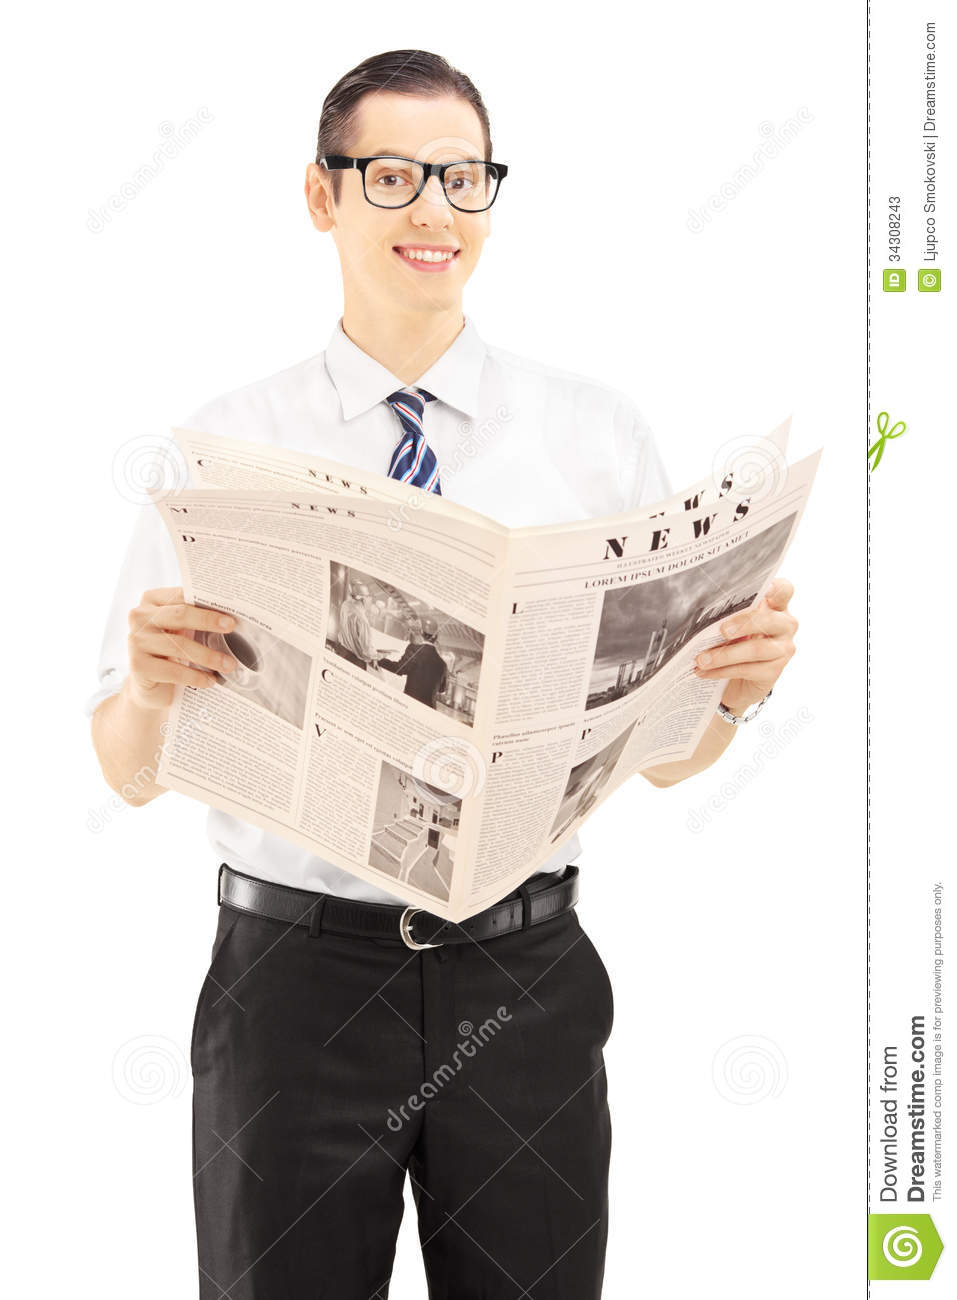 young businessperson holding a newspaper and looking at